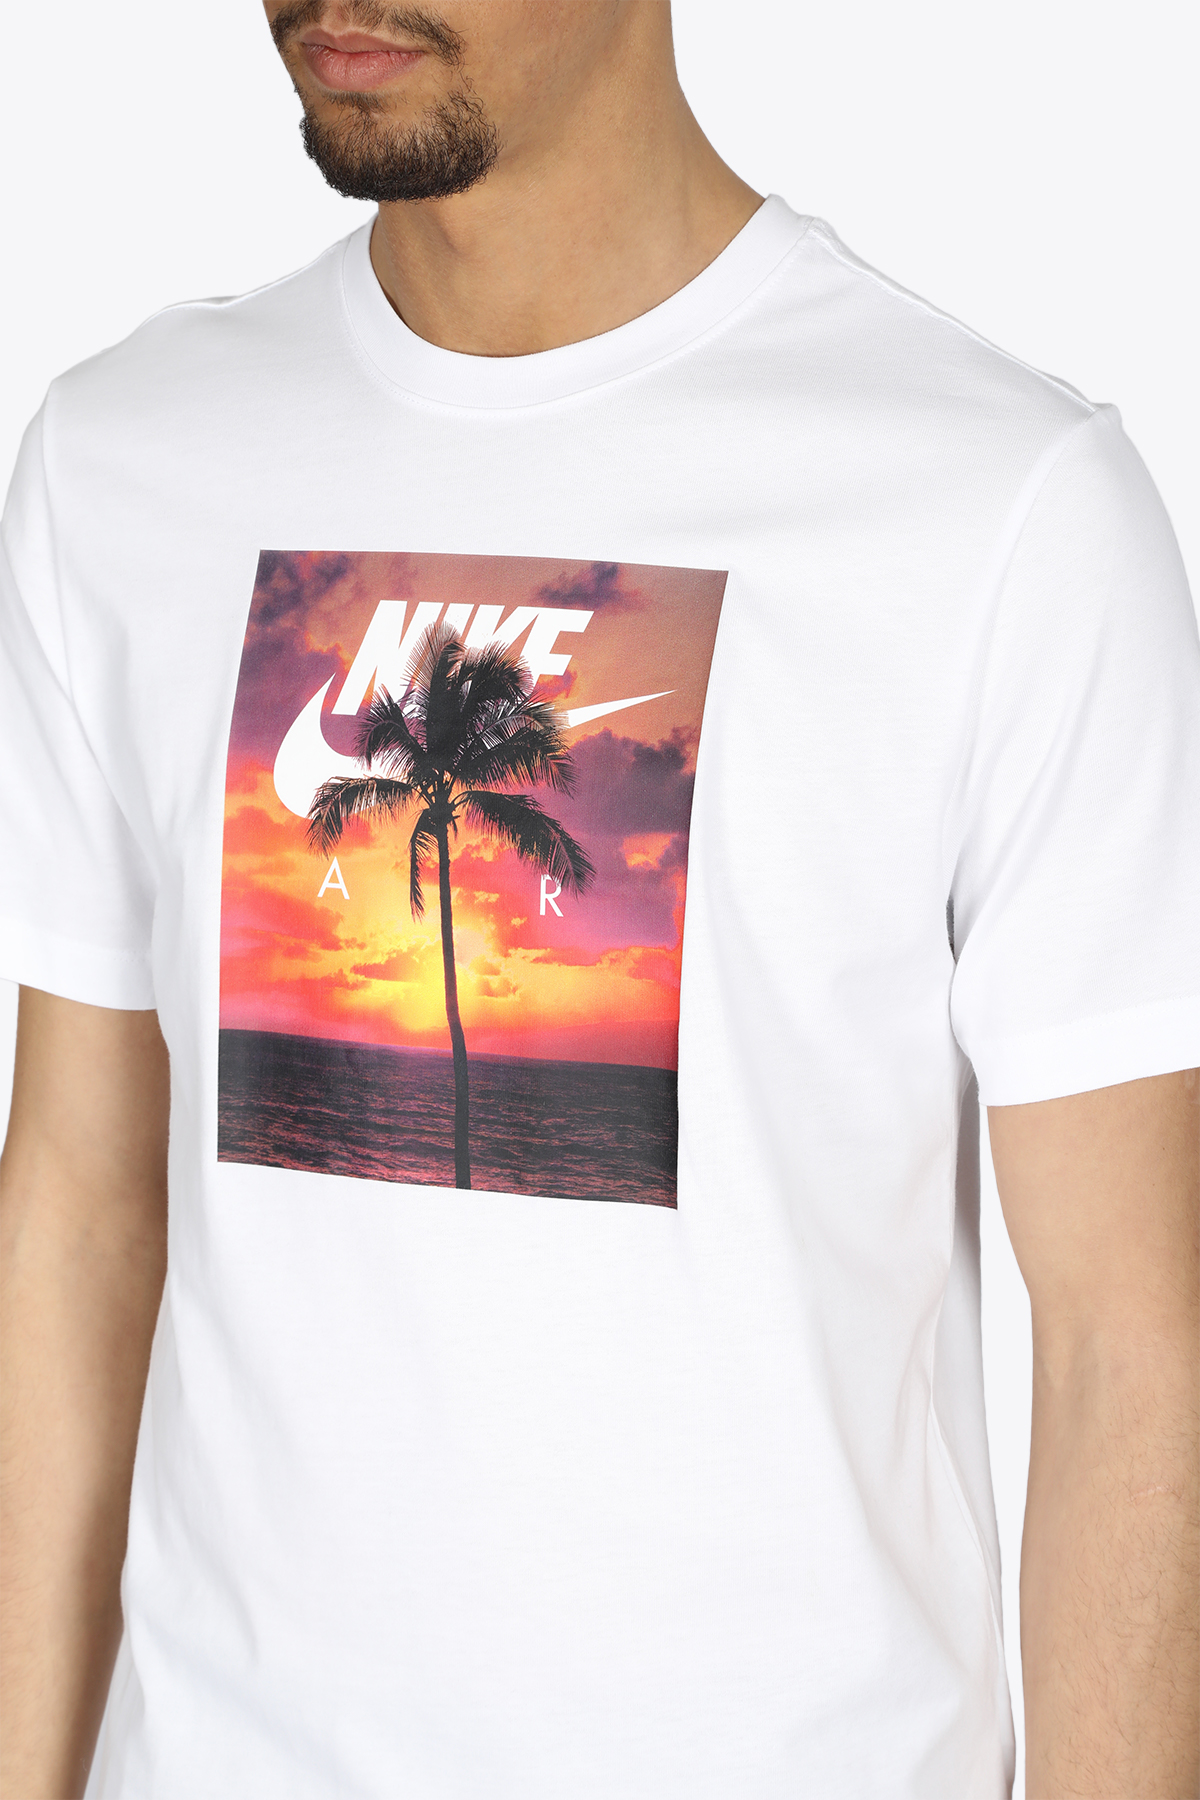 PALM TREE T-SHIRT NIKE | 8 | DB6163-100WHITE/ORANGE/PINK